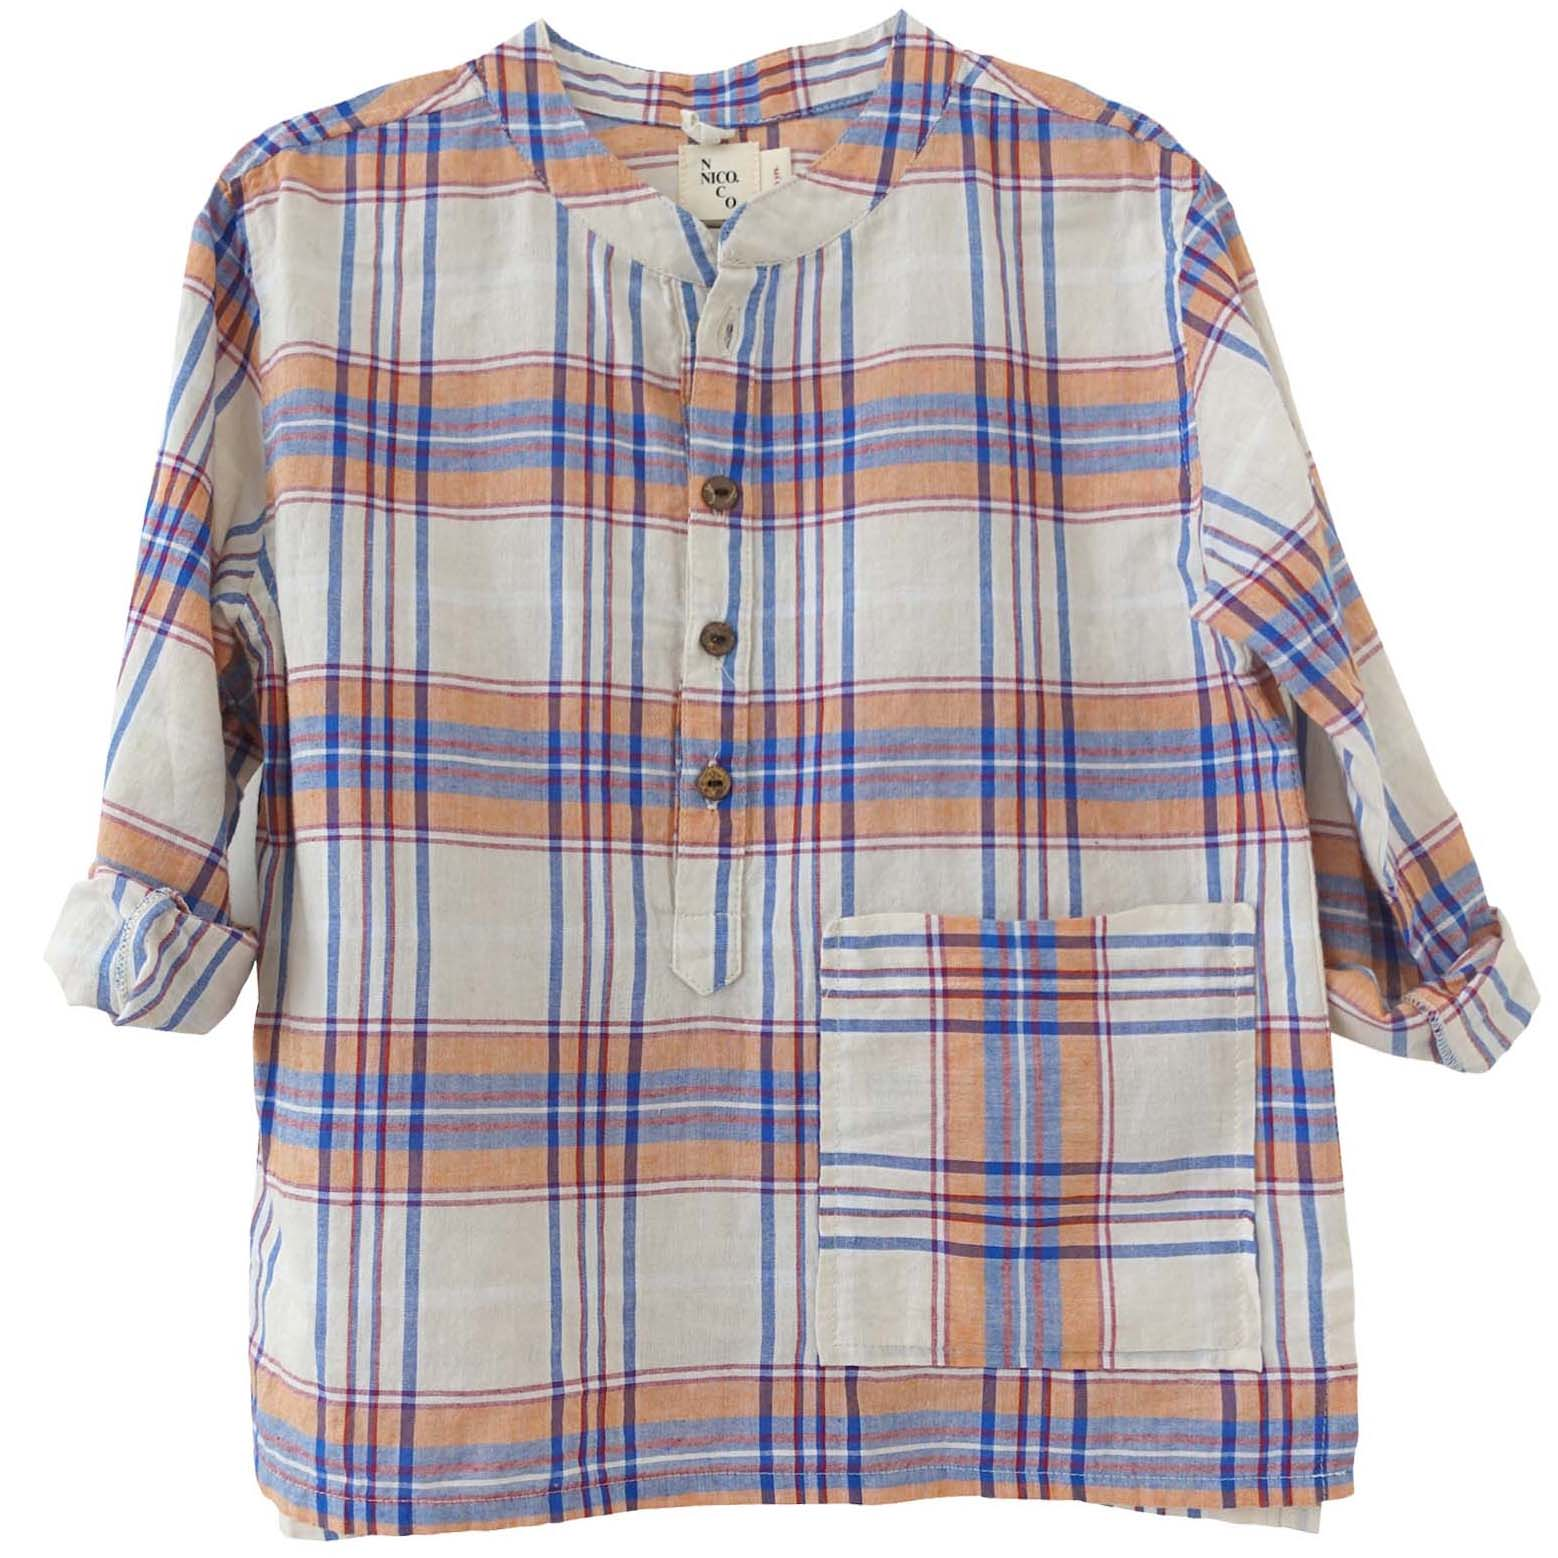 yoya, kids, boys, nico nico, summer, button front, band collar, half placket, plaid, henley, popover, pocket, shirt